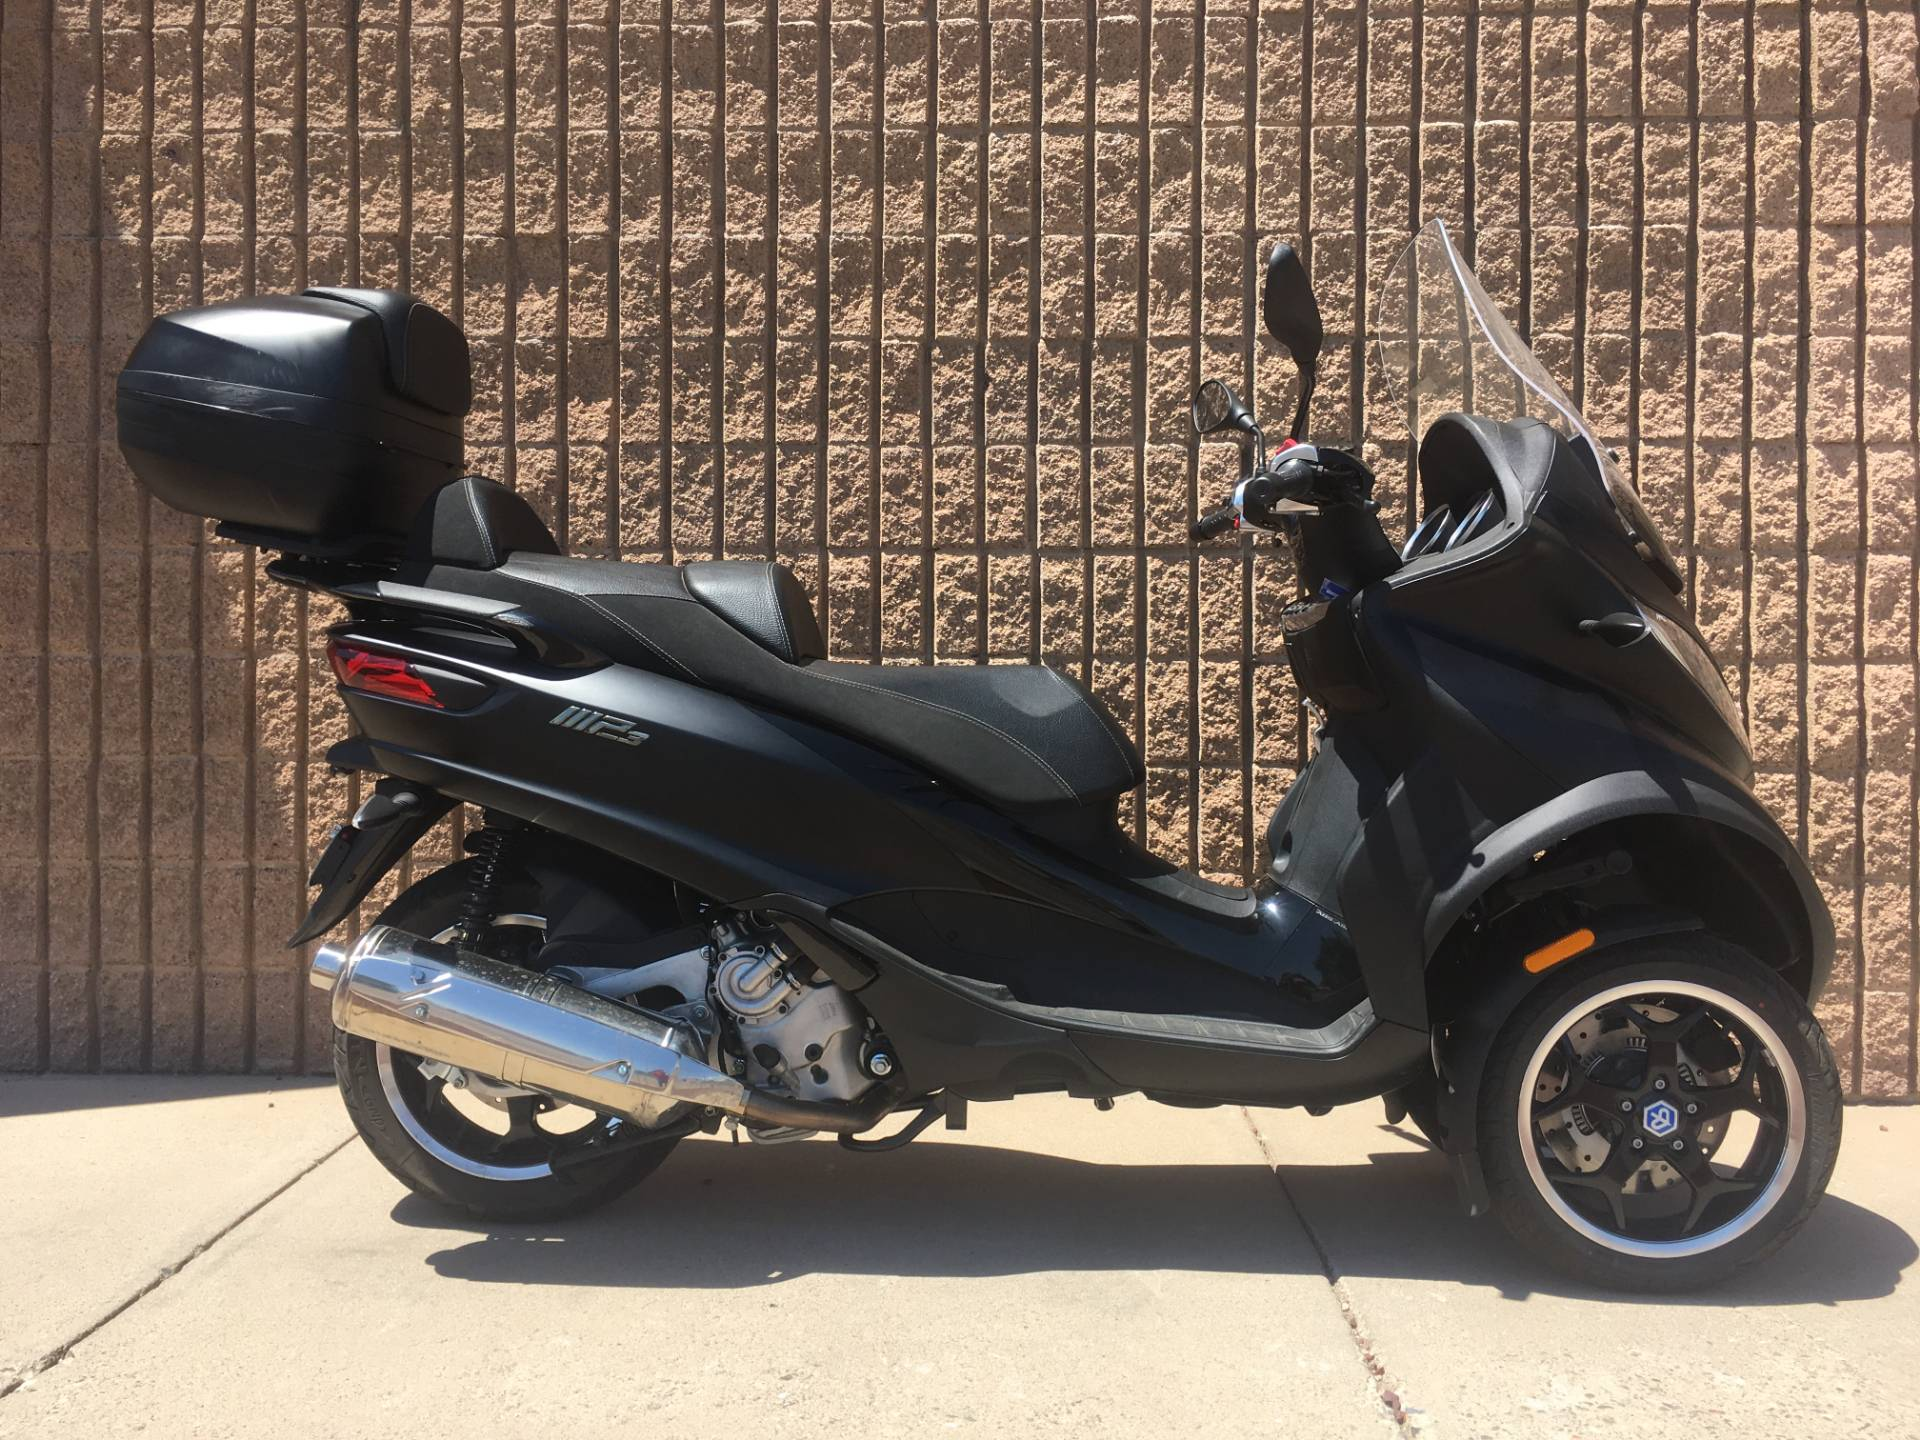 Used 2016 Piaggio MP3 500 SPORT ABS Scooters in Albuquerque, NM